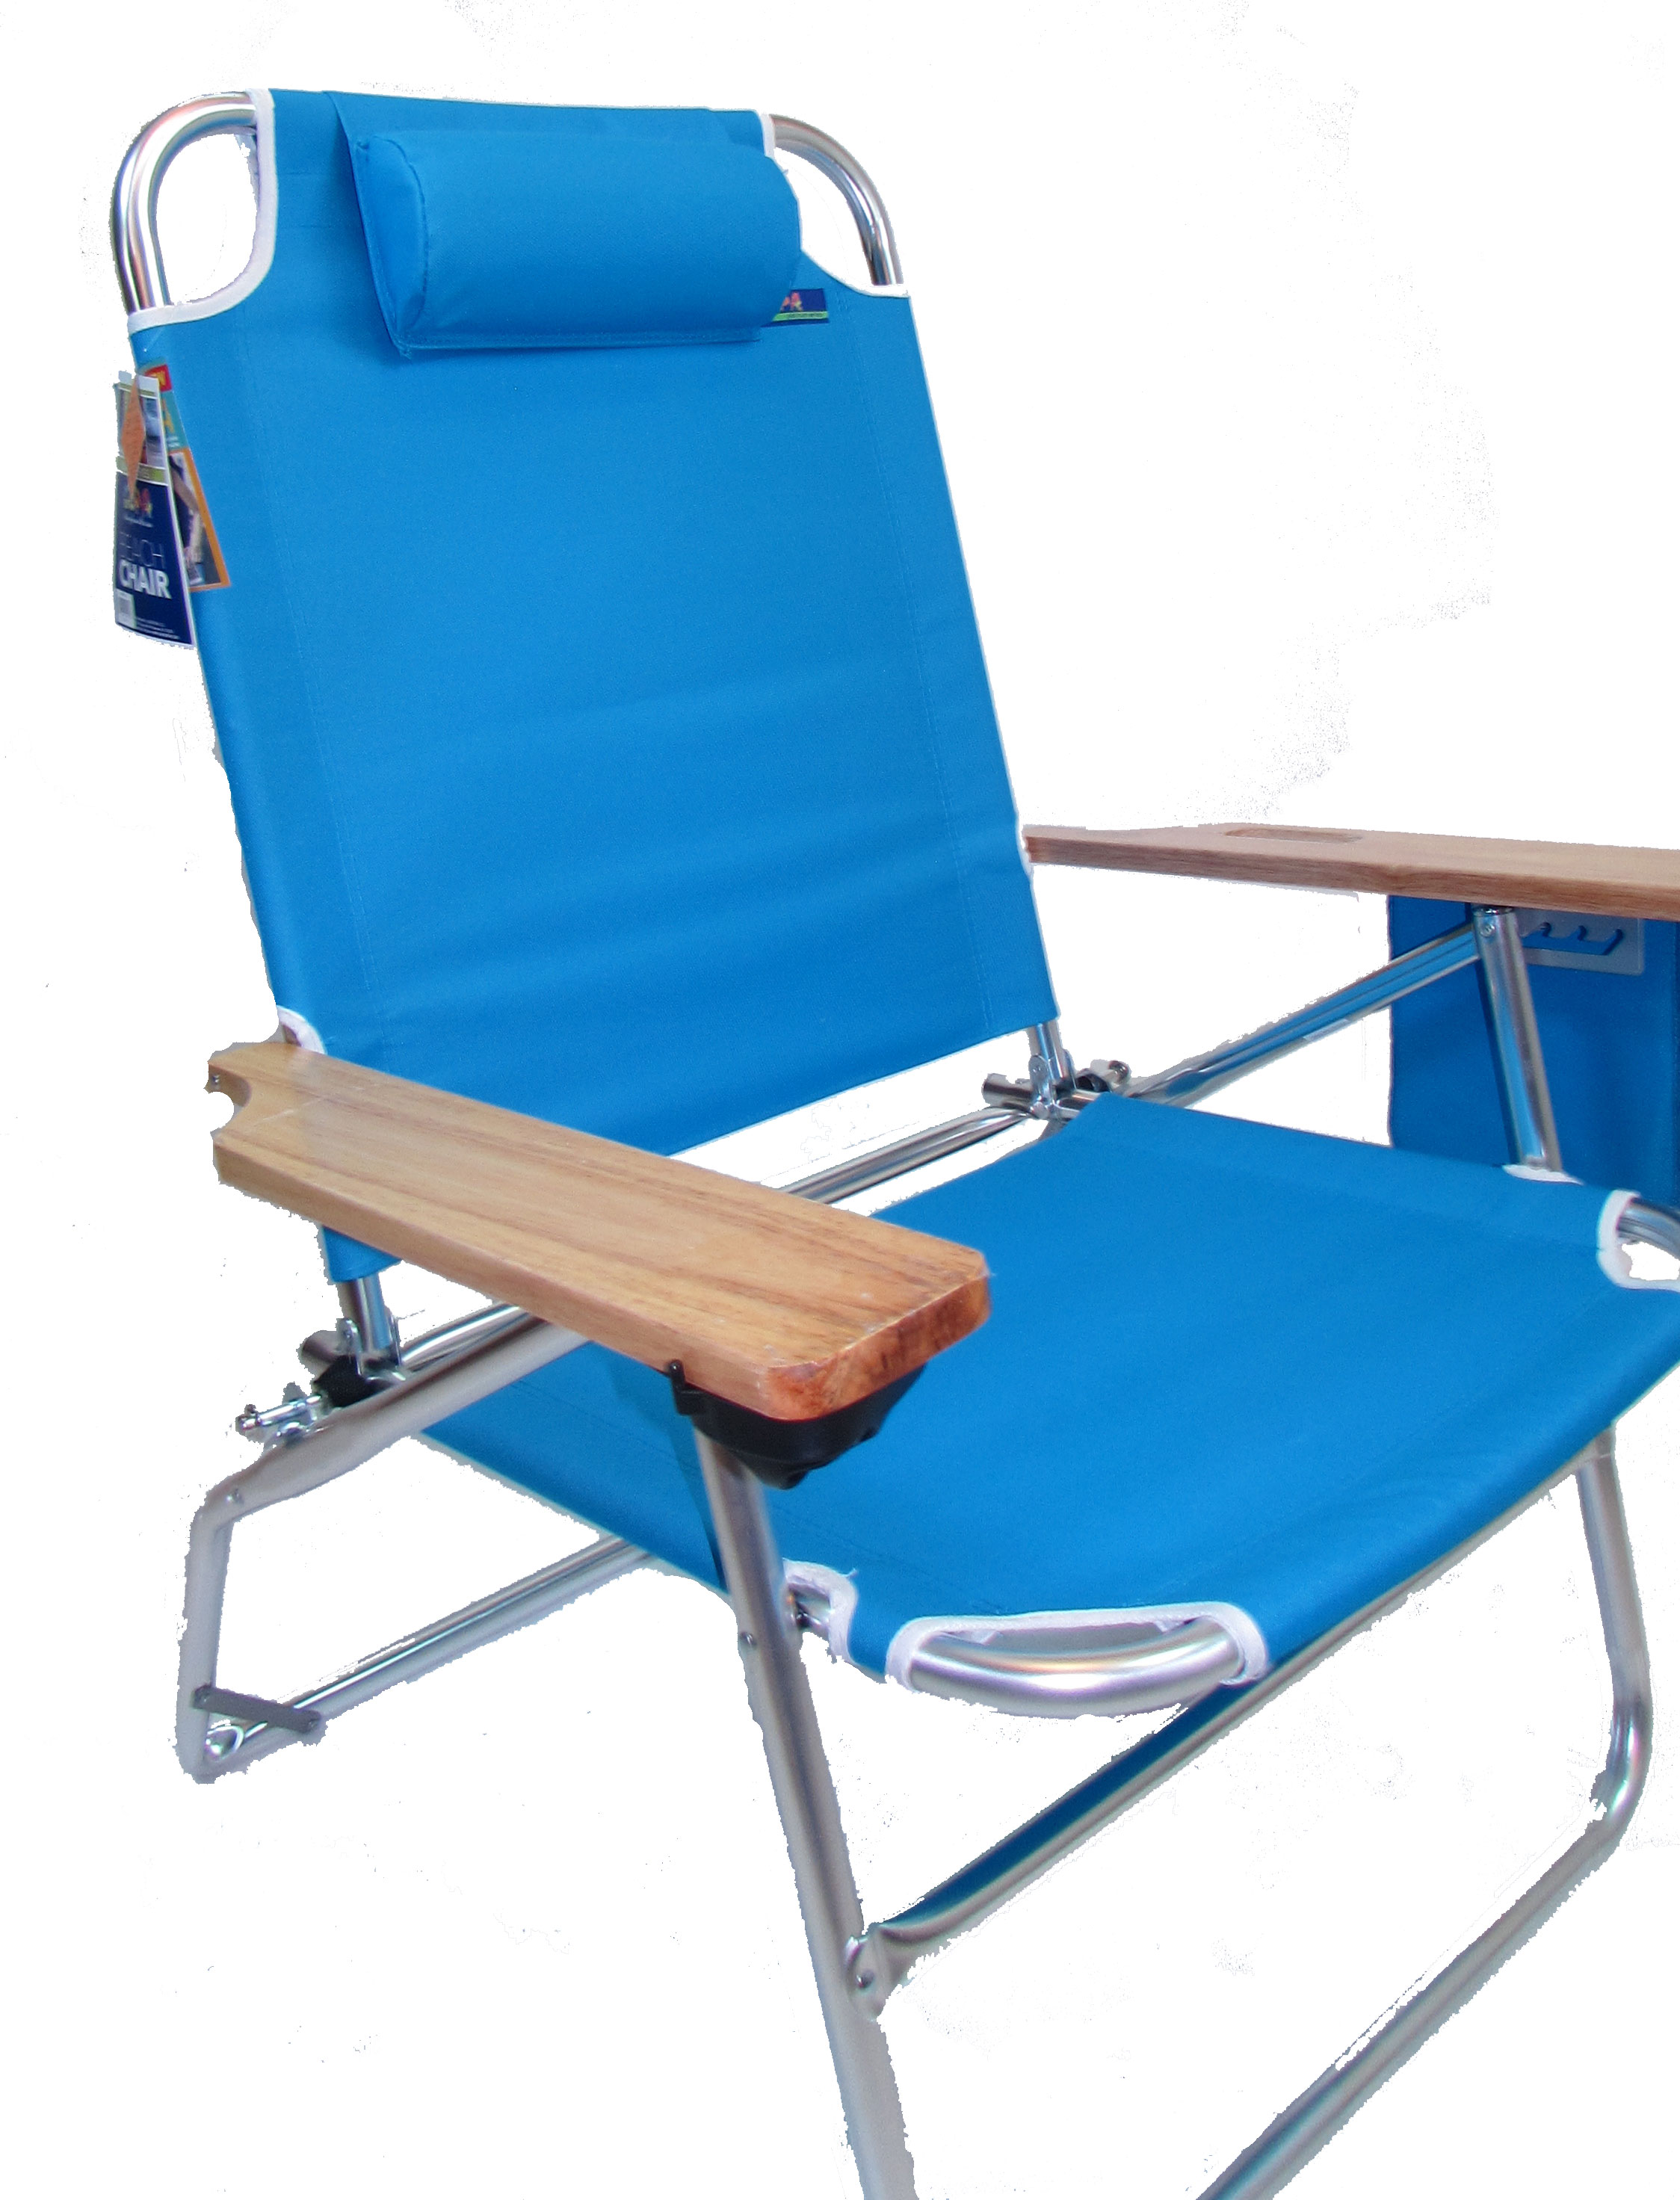 Big Jumbo 4 Position Chair by JGR Copa